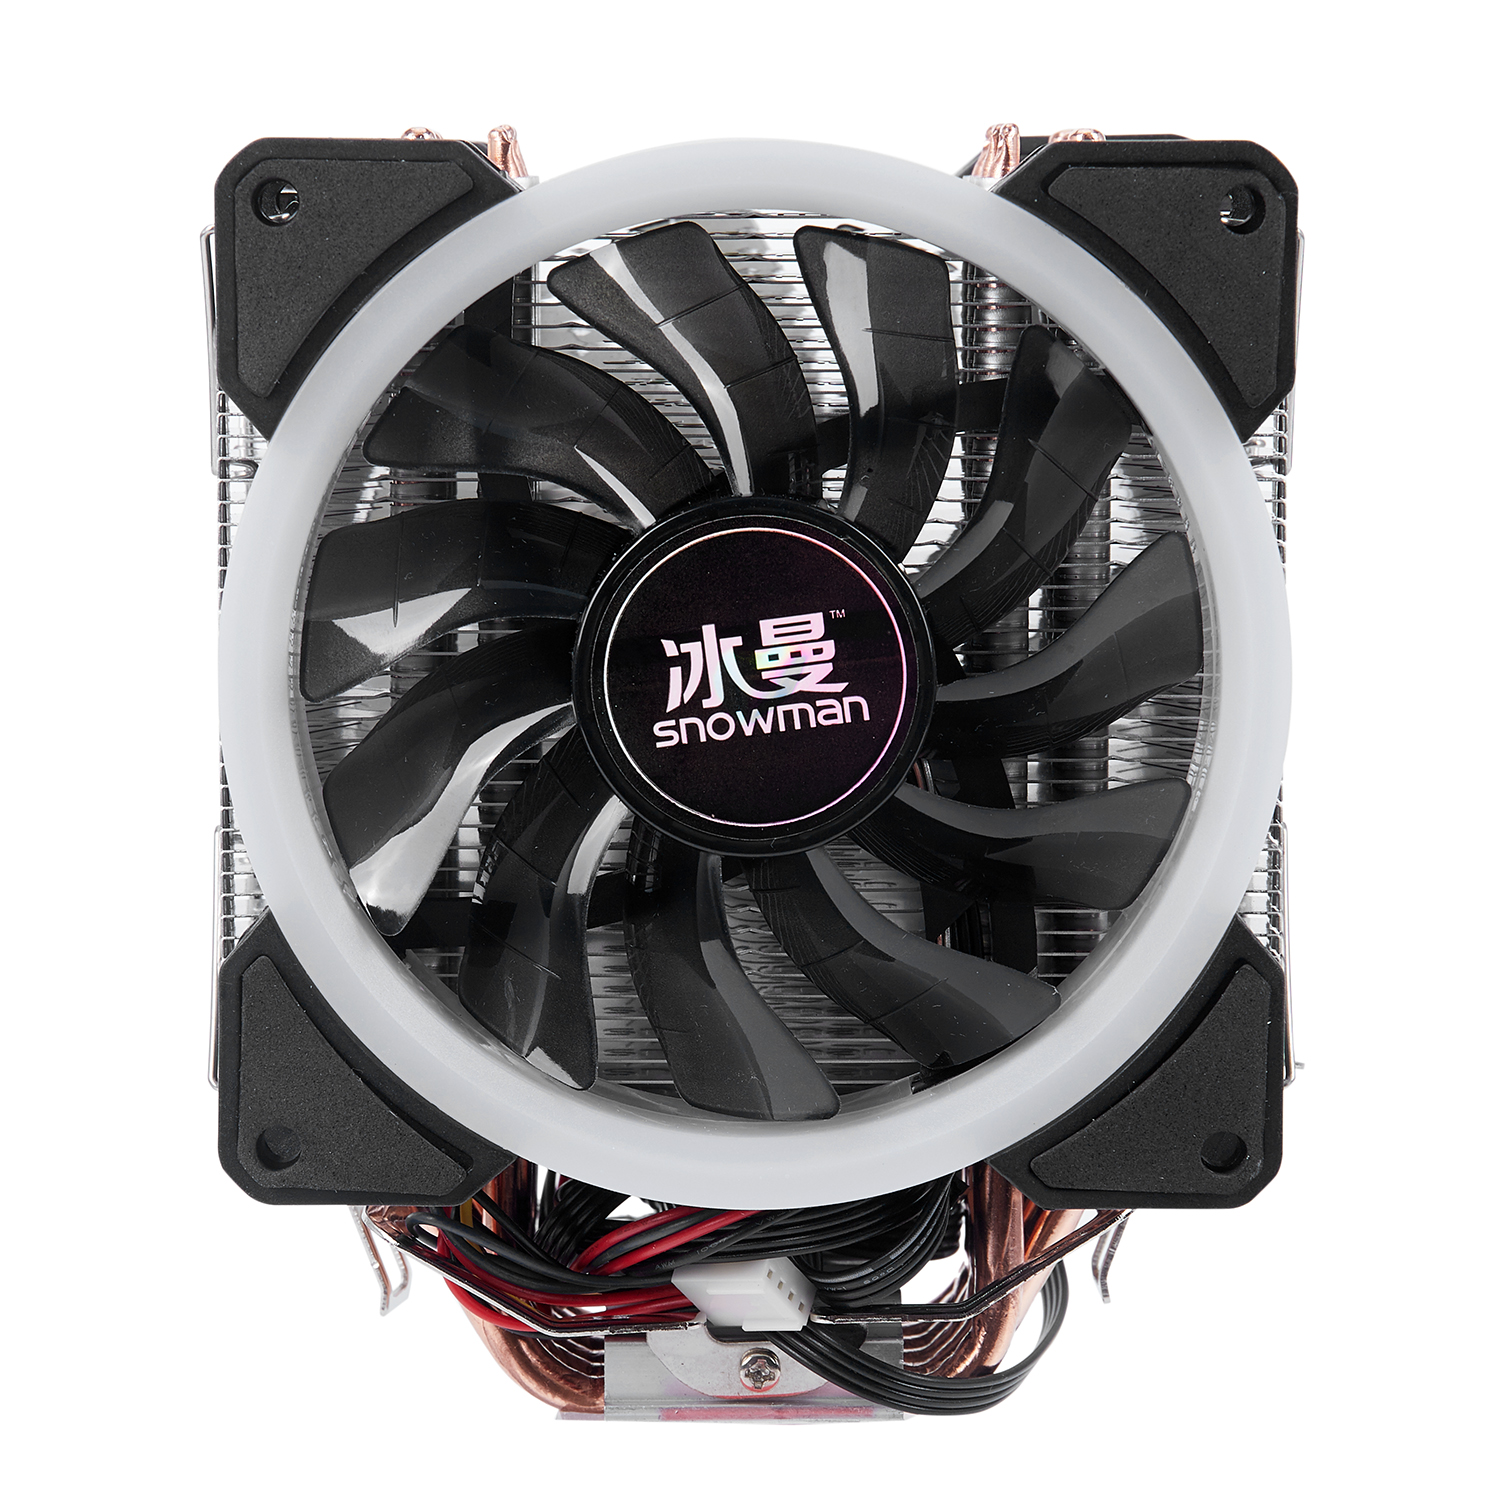 SNOWMAN 4PIN <font><b>CPU</b></font> <font><b>cooler</b></font> 6 heatpipe <font><b>RGB</b></font> LED Double fans cooling 12cm fan LGA775 <font><b>1151</b></font> 115x 1366 support Intel AMD image